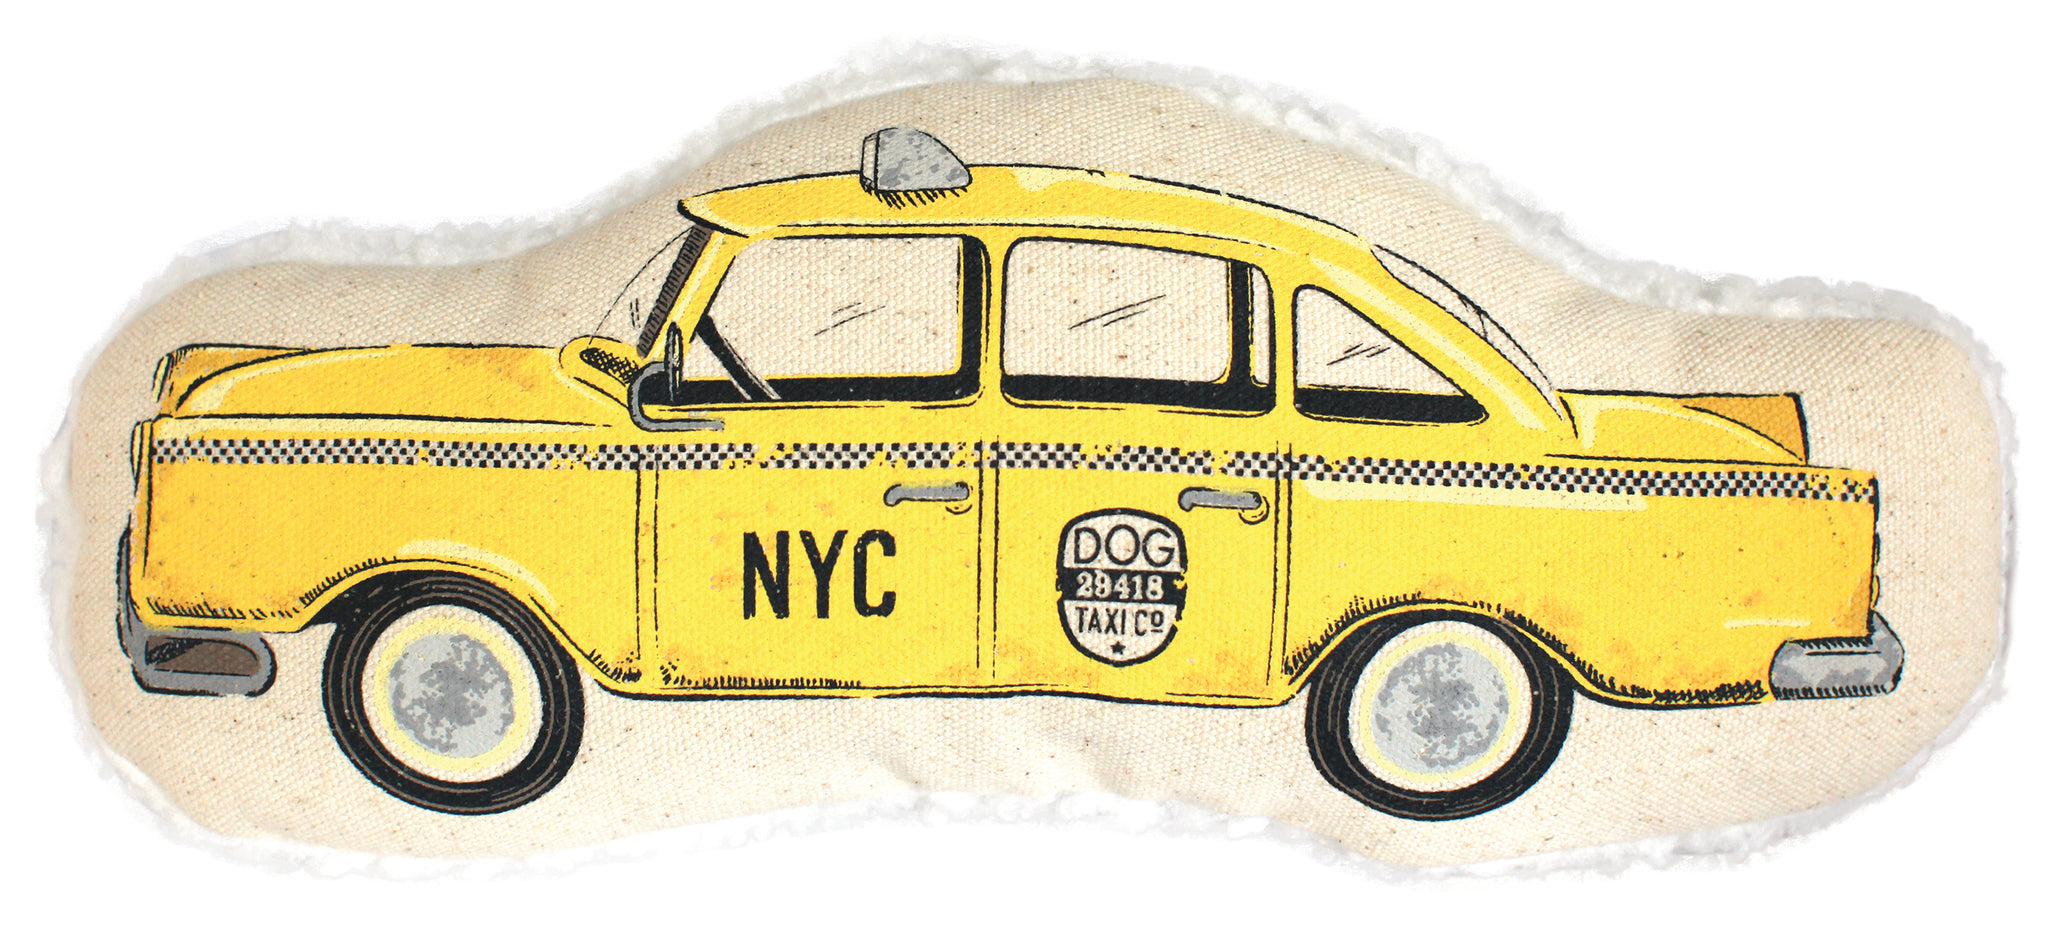 Taxi Cab Toy | Dog Toy | Squeaker Toy